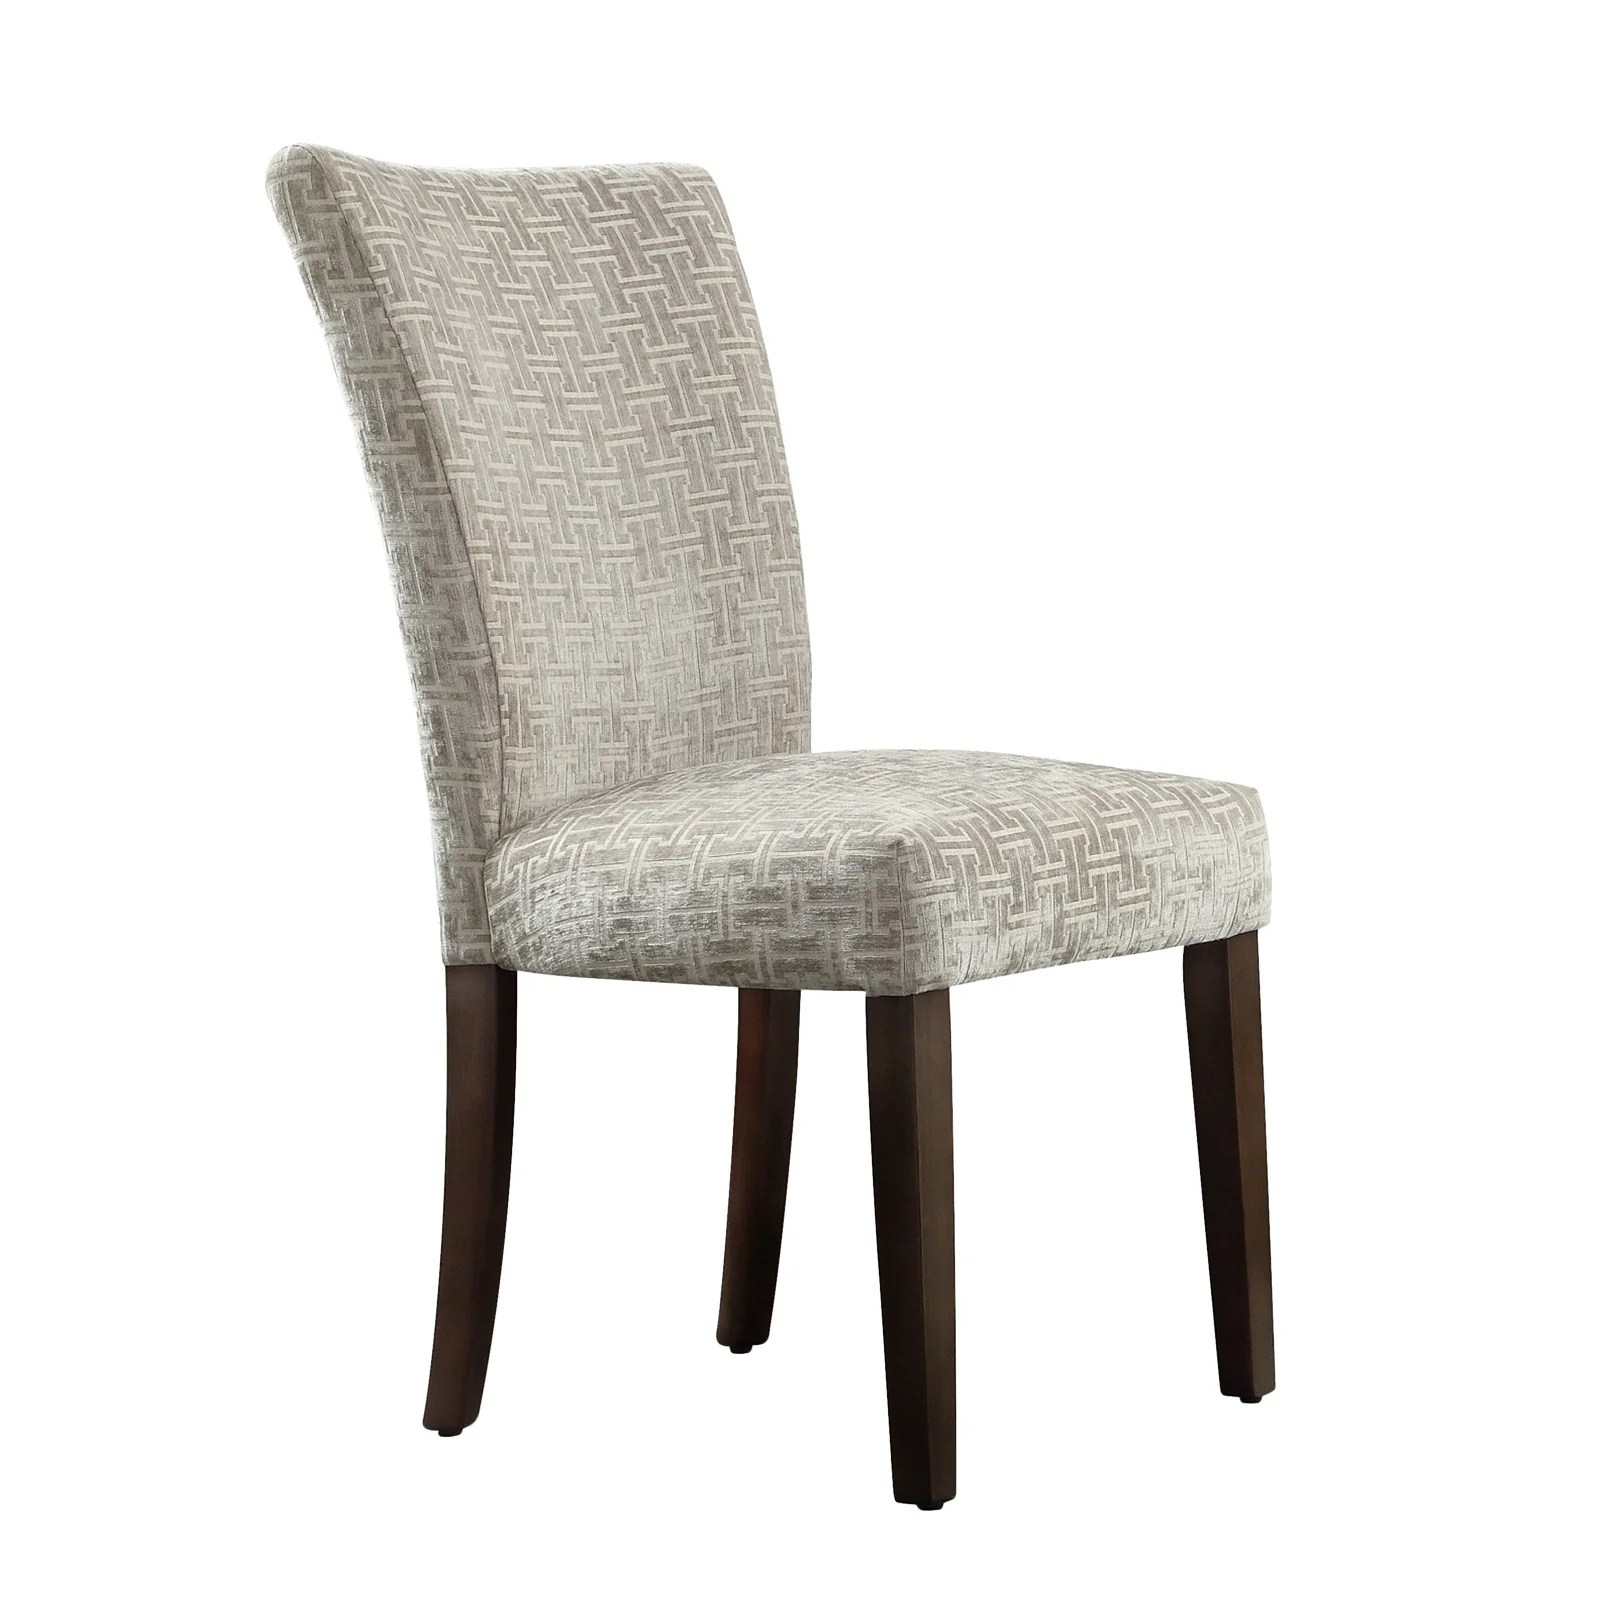 Parson Chair Mercer41 Oliver Link Print Parson Chair And Reviews Wayfair